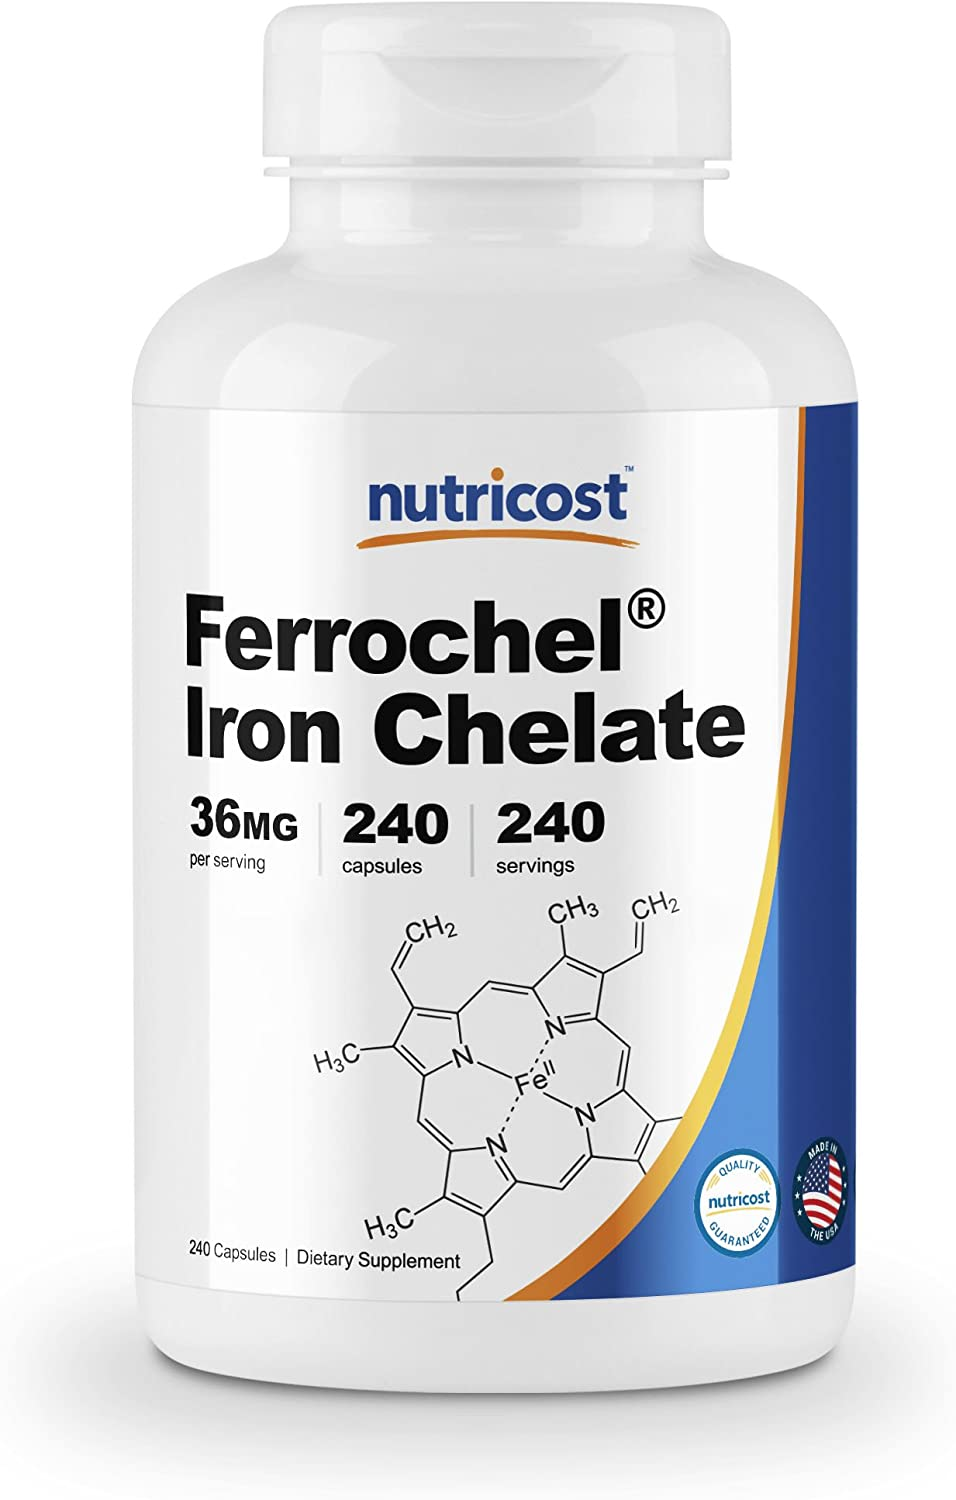 Nutricost Chelated Iron, As Ferrochel, 36mg, 240 Capsules